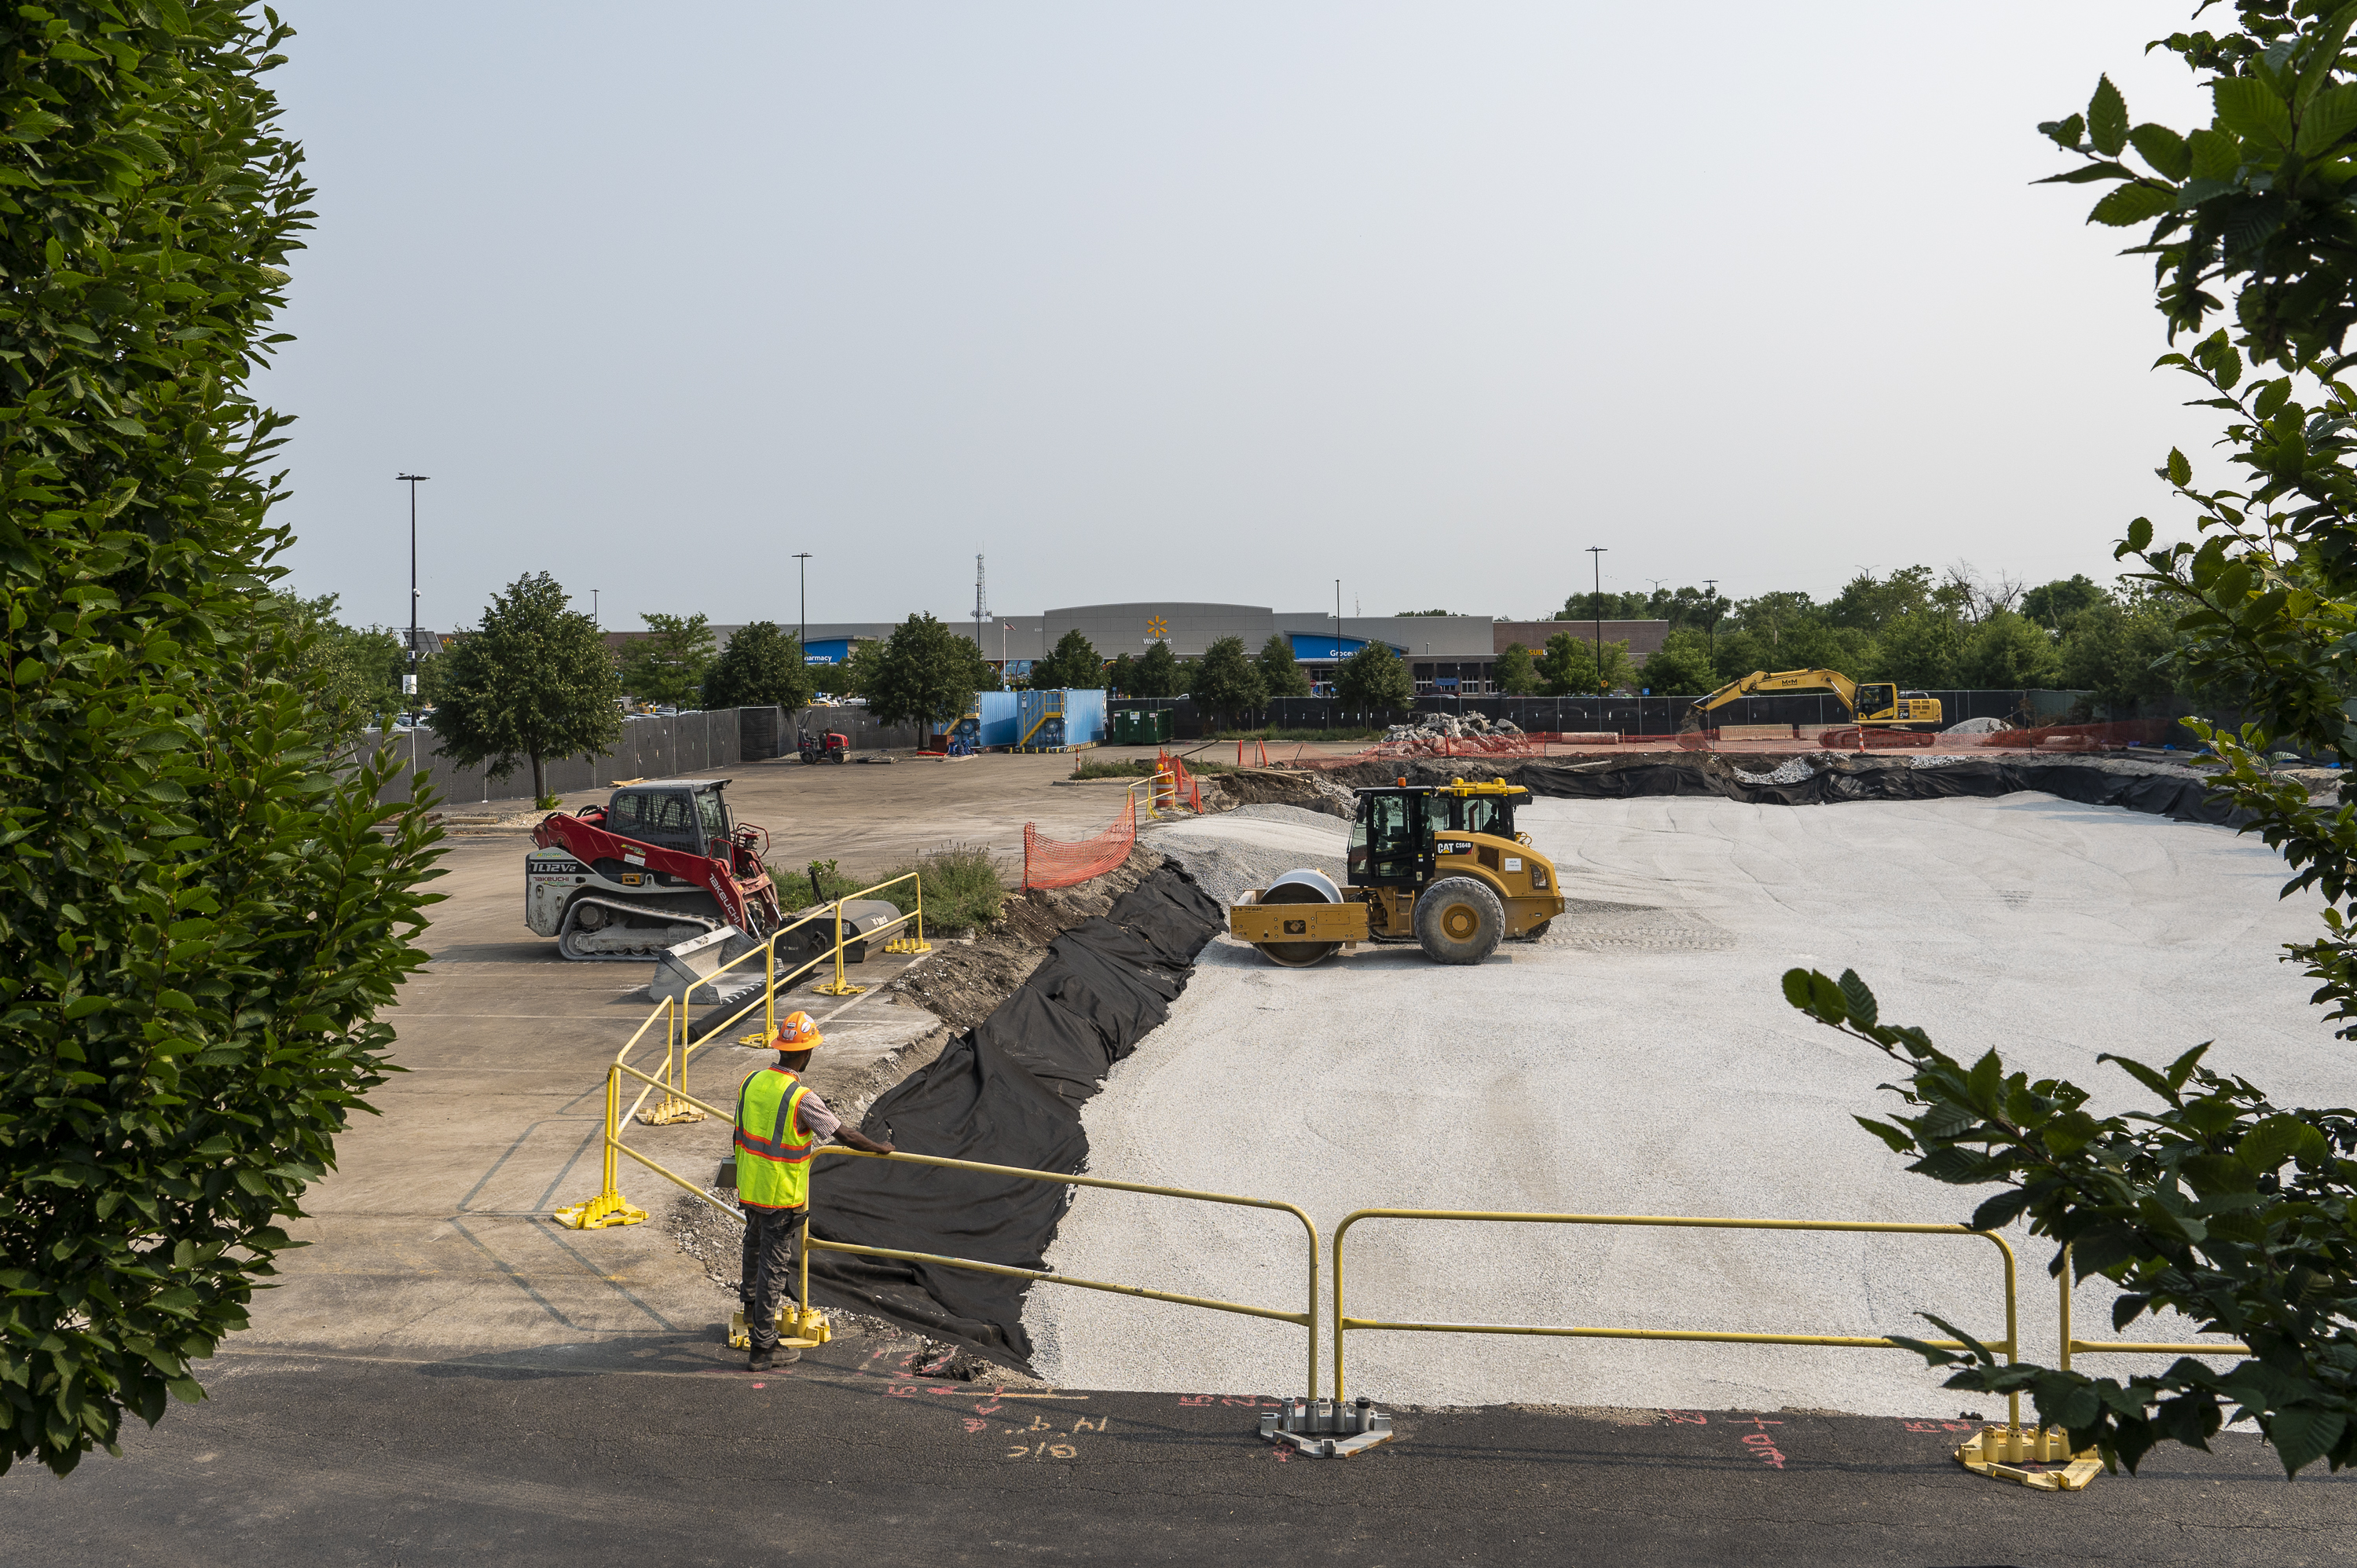 The site where a Walmart Academy is being built, in the parking lot of the Walmart at 8331 S. Stewart Ave in the Chatham community. The store is in the background. The Academy will offer job training services; plans call for it to be open in the fall of 2021.